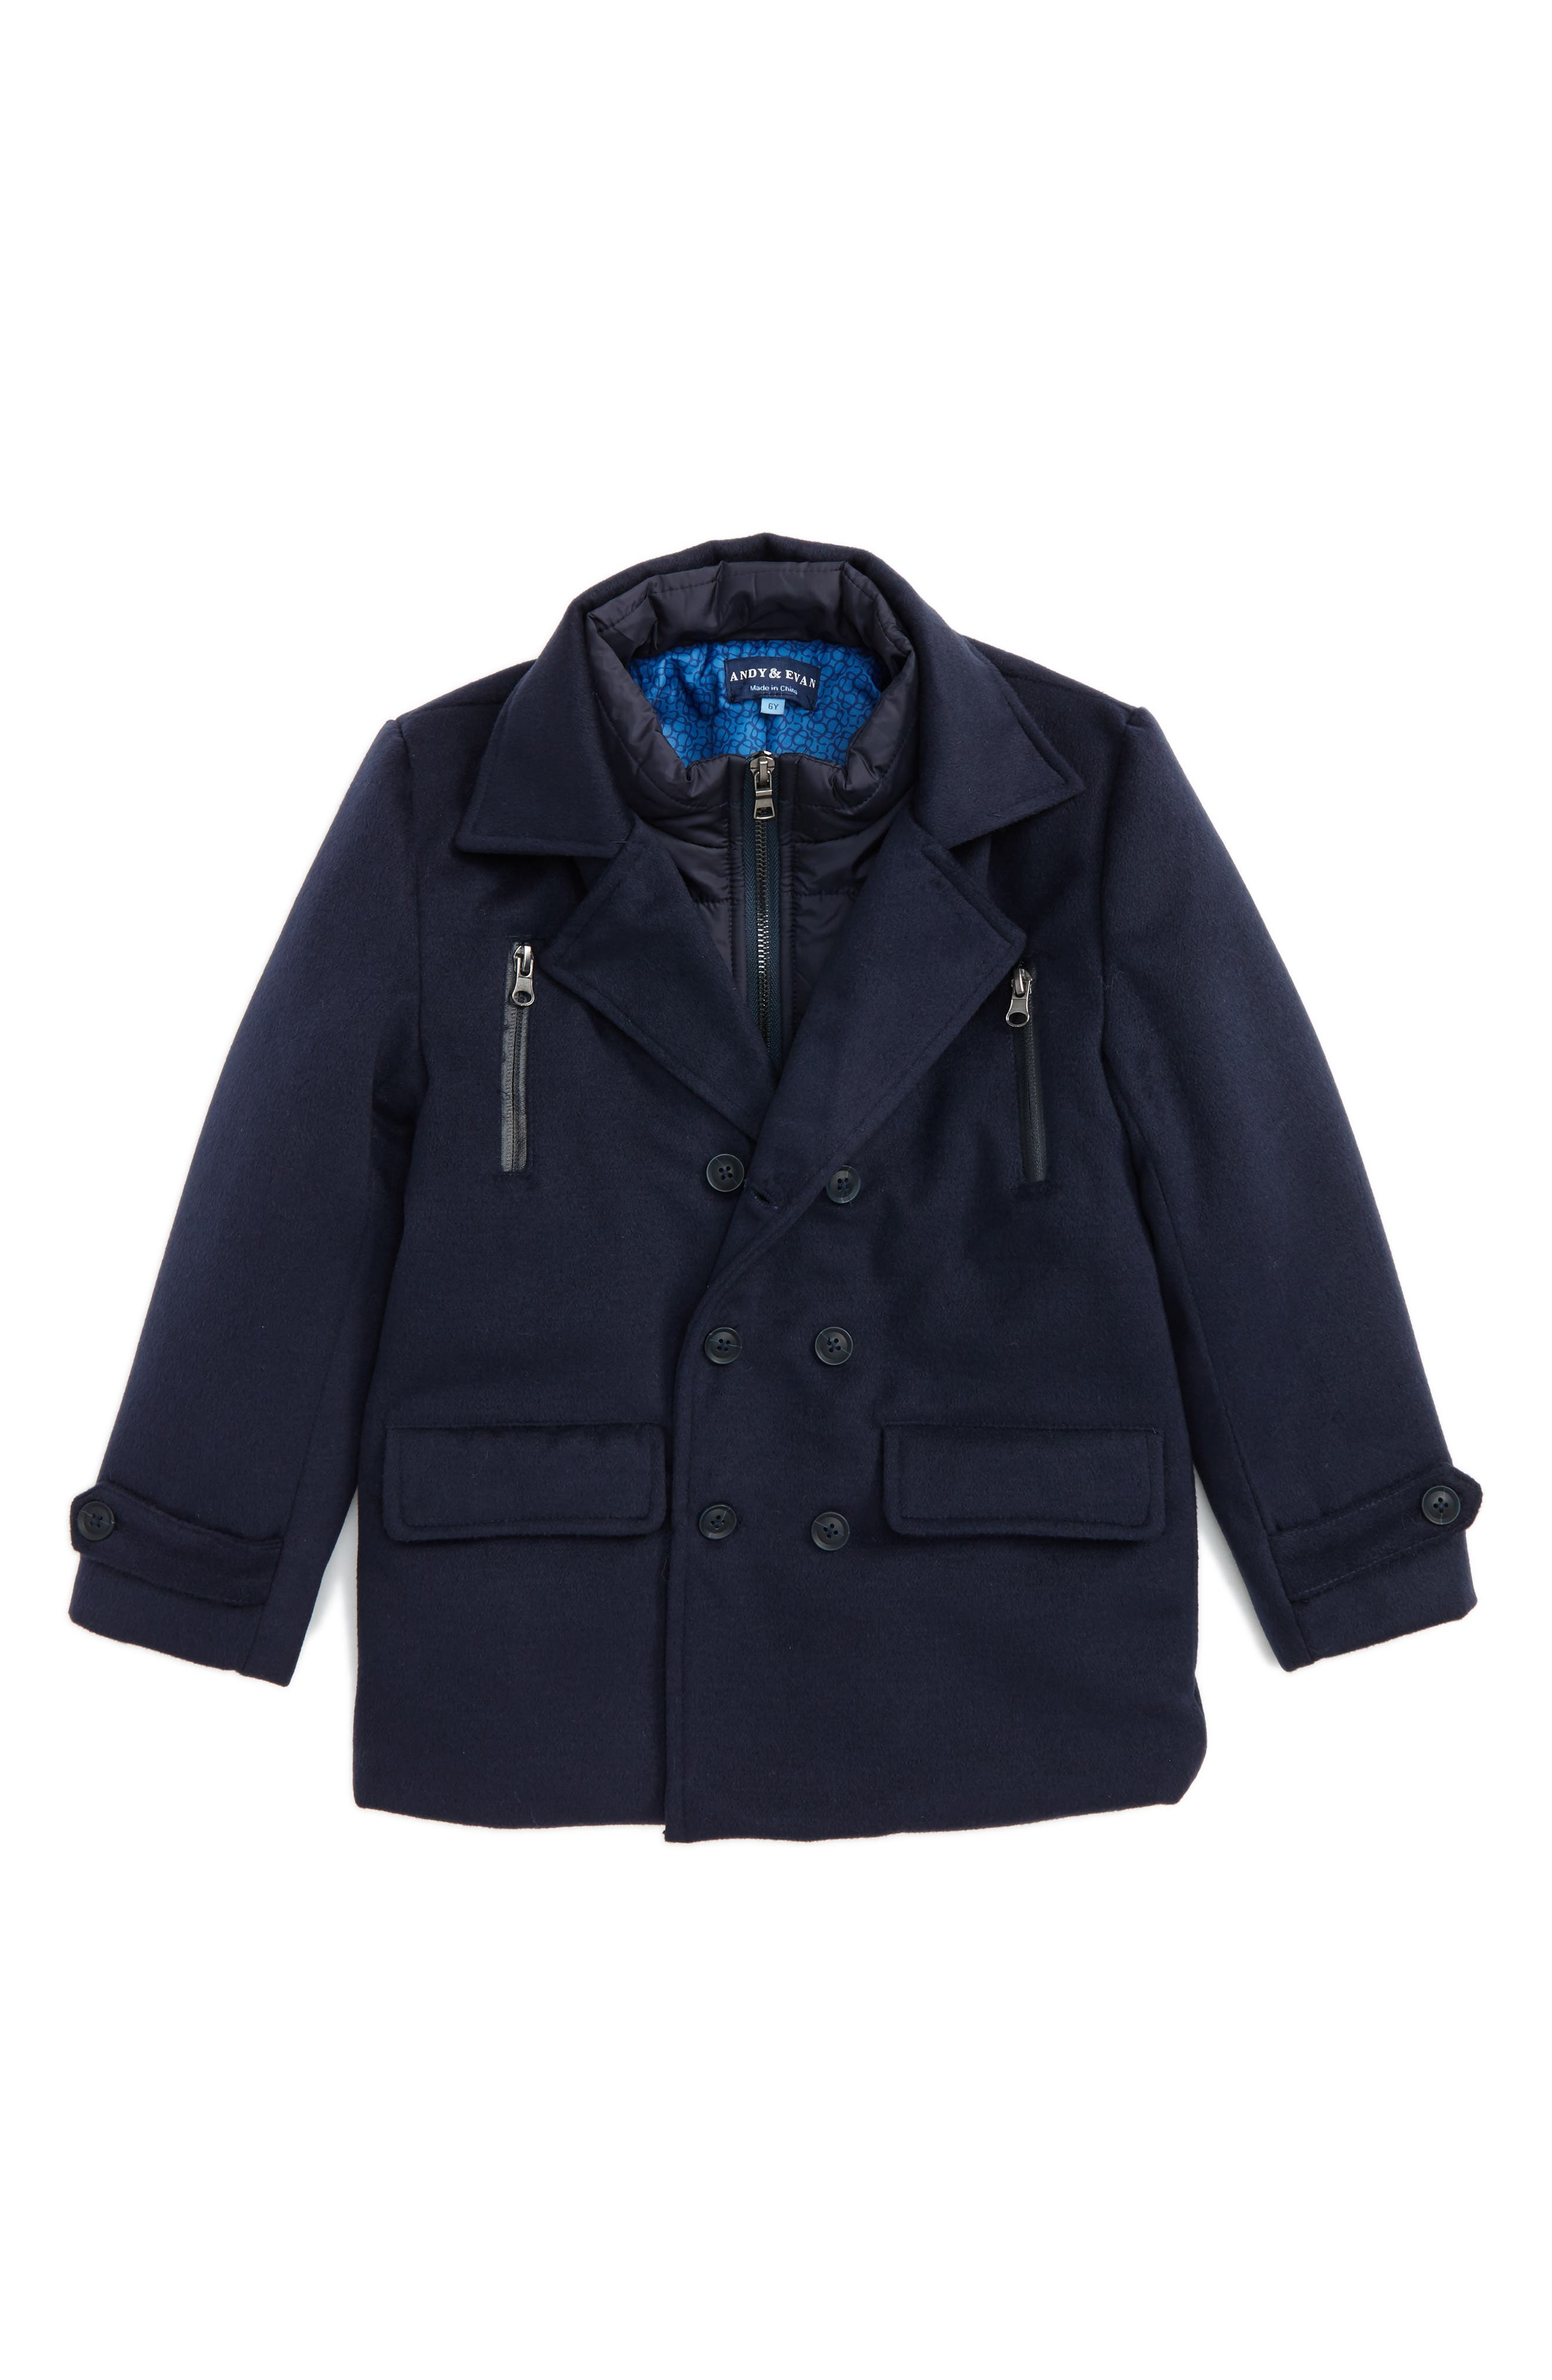 Double Breasted Peacoat,                             Main thumbnail 1, color,                             Navy